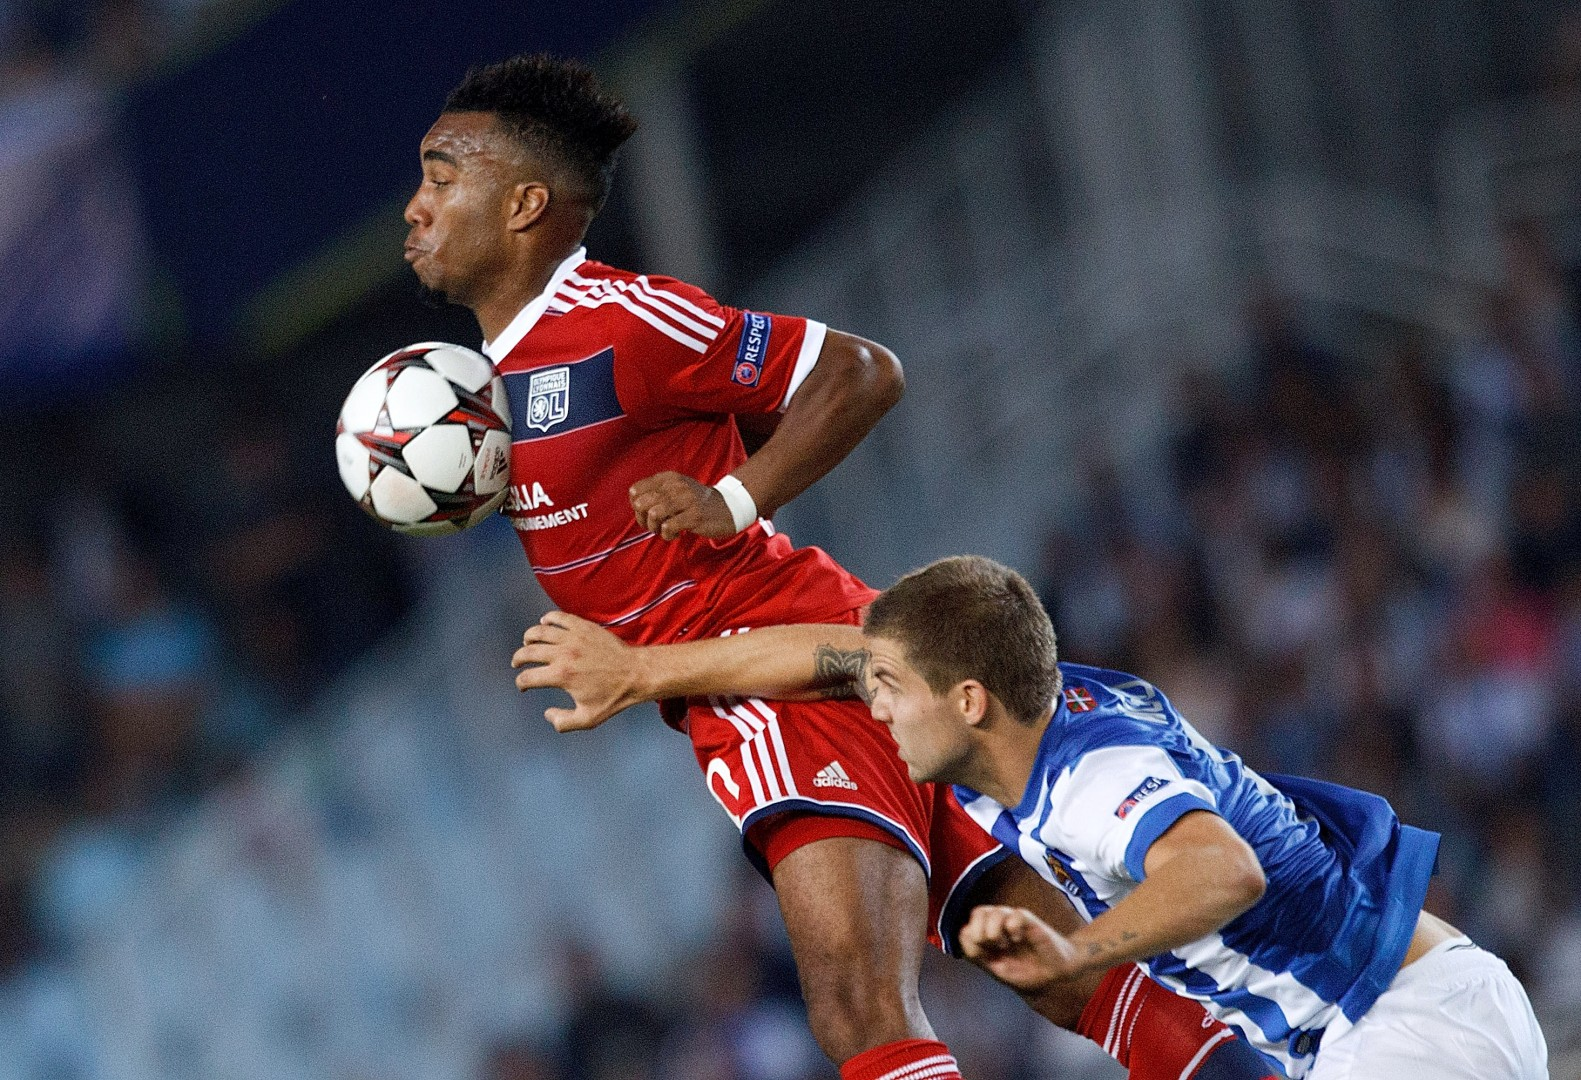 Lyon's French striker Alexandre Lacazette, linked with Newcastle